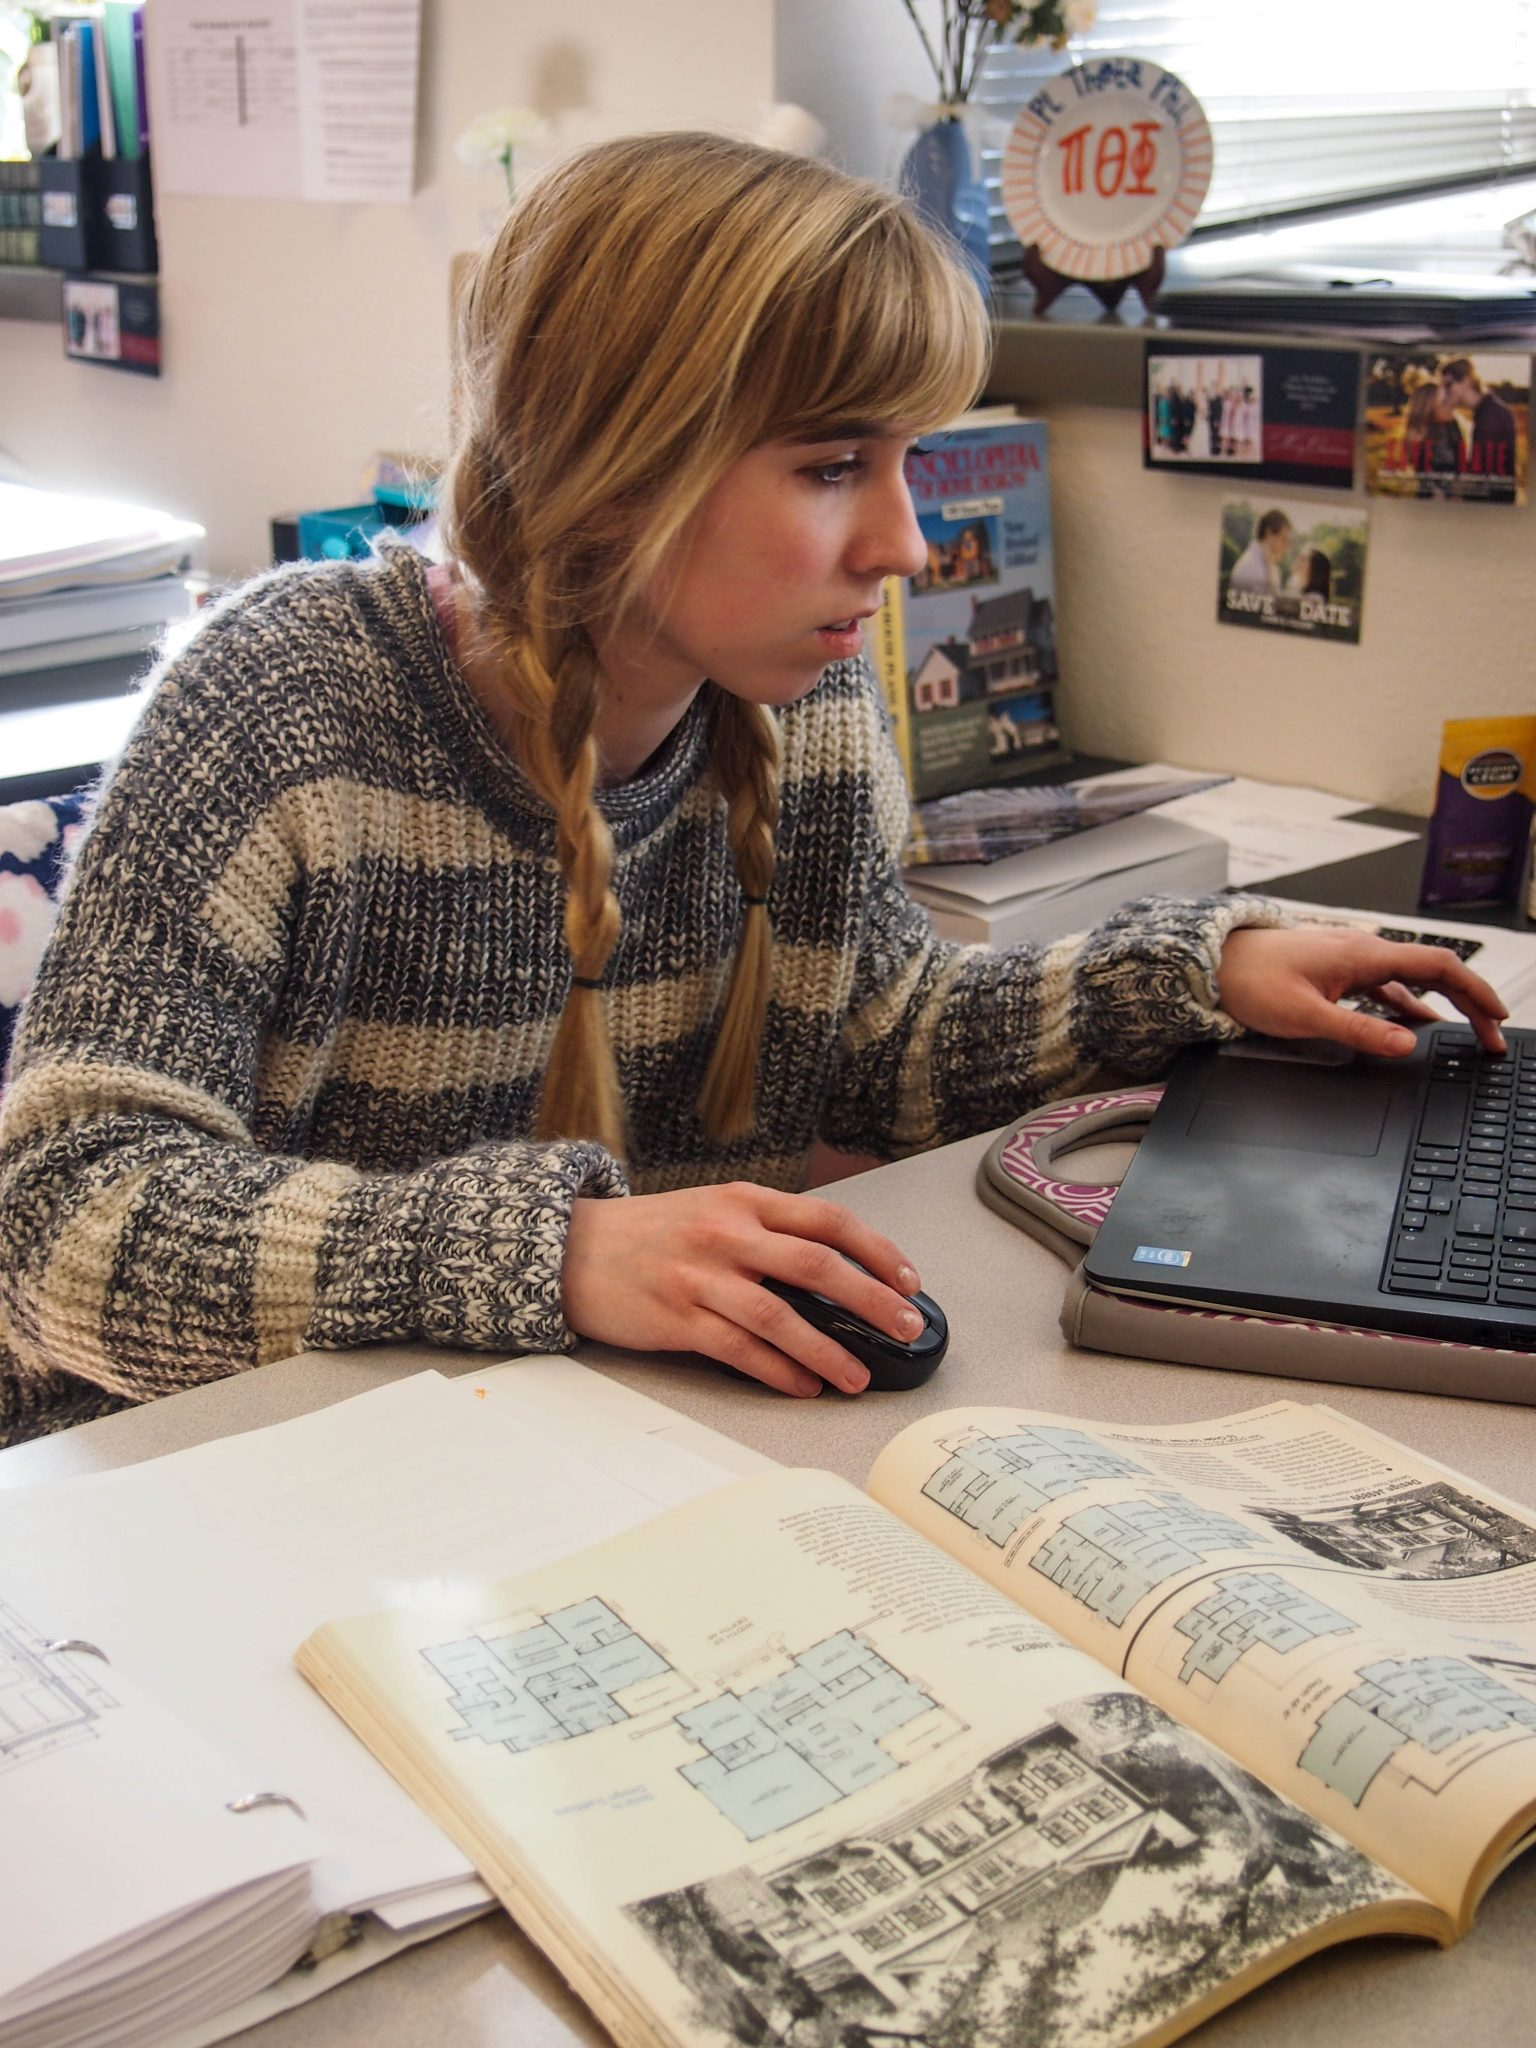 renovated interior design space helps students the bison